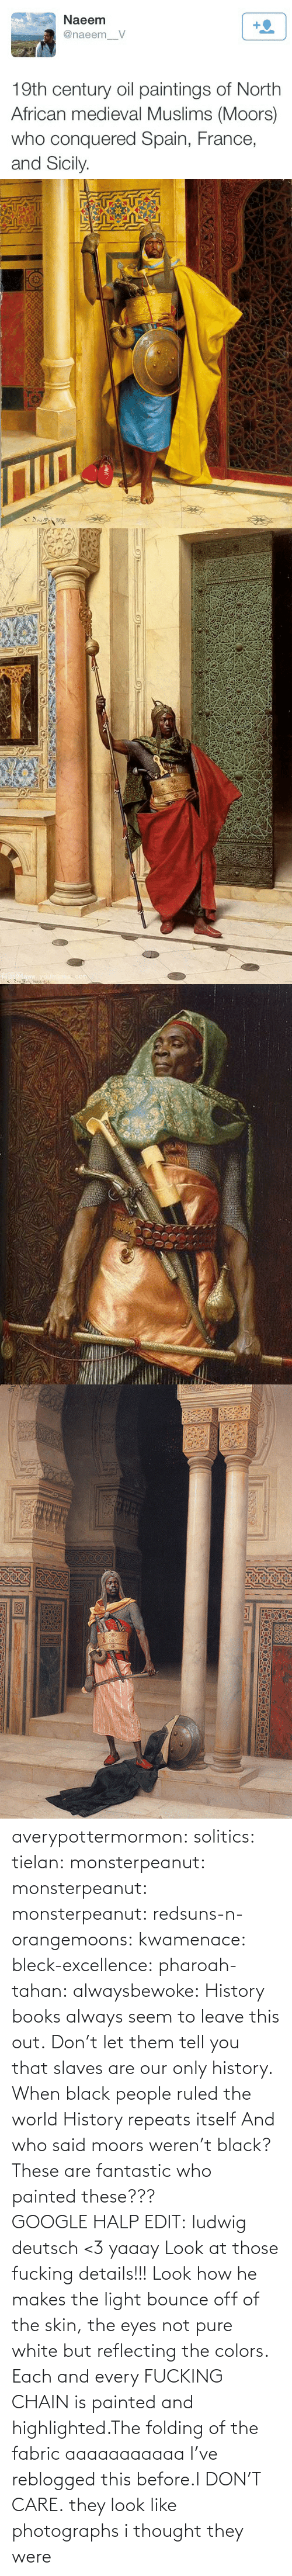 Black People: Naeem  +2  @naeem_V  19th century oil paintings of North  African medieval Muslims (Moors)  who conquered Spain, France,  and Sicily.   Nww.youhuaua com averypottermormon: solitics:  tielan:  monsterpeanut:  monsterpeanut:  monsterpeanut:  redsuns-n-orangemoons:  kwamenace:  bleck-excellence:  pharoah-tahan:  alwaysbewoke:  History books always seem to leave this out.  Don't let them tell you that slaves are our only history.  When black people ruled the world  History repeats itself  And who said moors weren't black?  These are fantastic who painted these???GOOGLE HALP EDIT: ludwig deutsch <3   yaaay   Look at those fucking details!!! Look how he makes the light bounce off of the skin, the eyes not pure white but reflecting the colors. Each and every FUCKING CHAIN is painted and highlighted.The folding of the fabric aaaaaaaaaaa  I've reblogged this before.I DON'T CARE.  they look like photographs   i thought they were